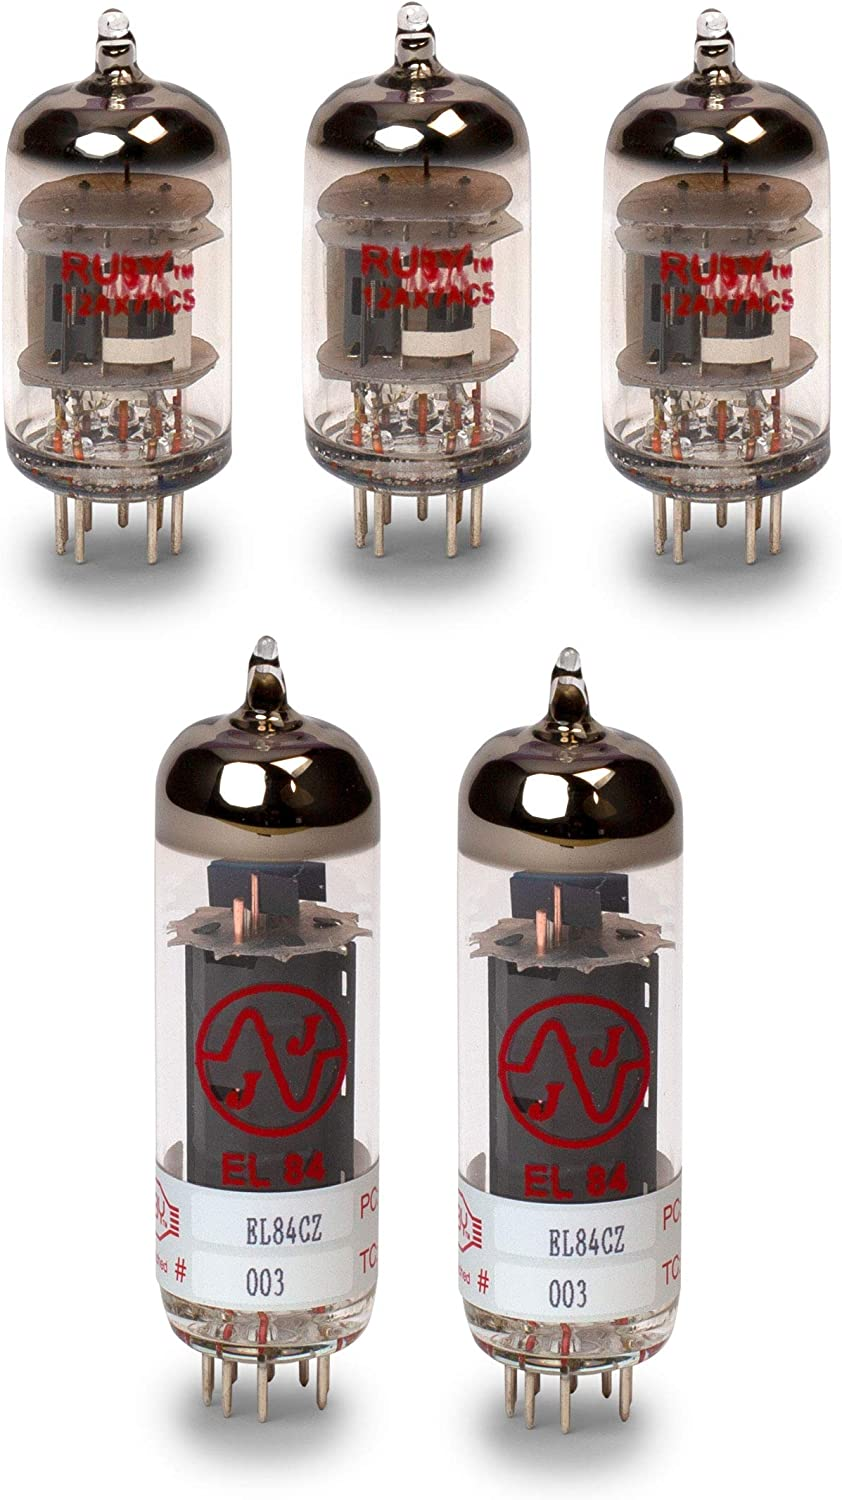 Orange Dark Terror Tube Set with Matched Power Tubes Ruby and JJ Brand Tubes